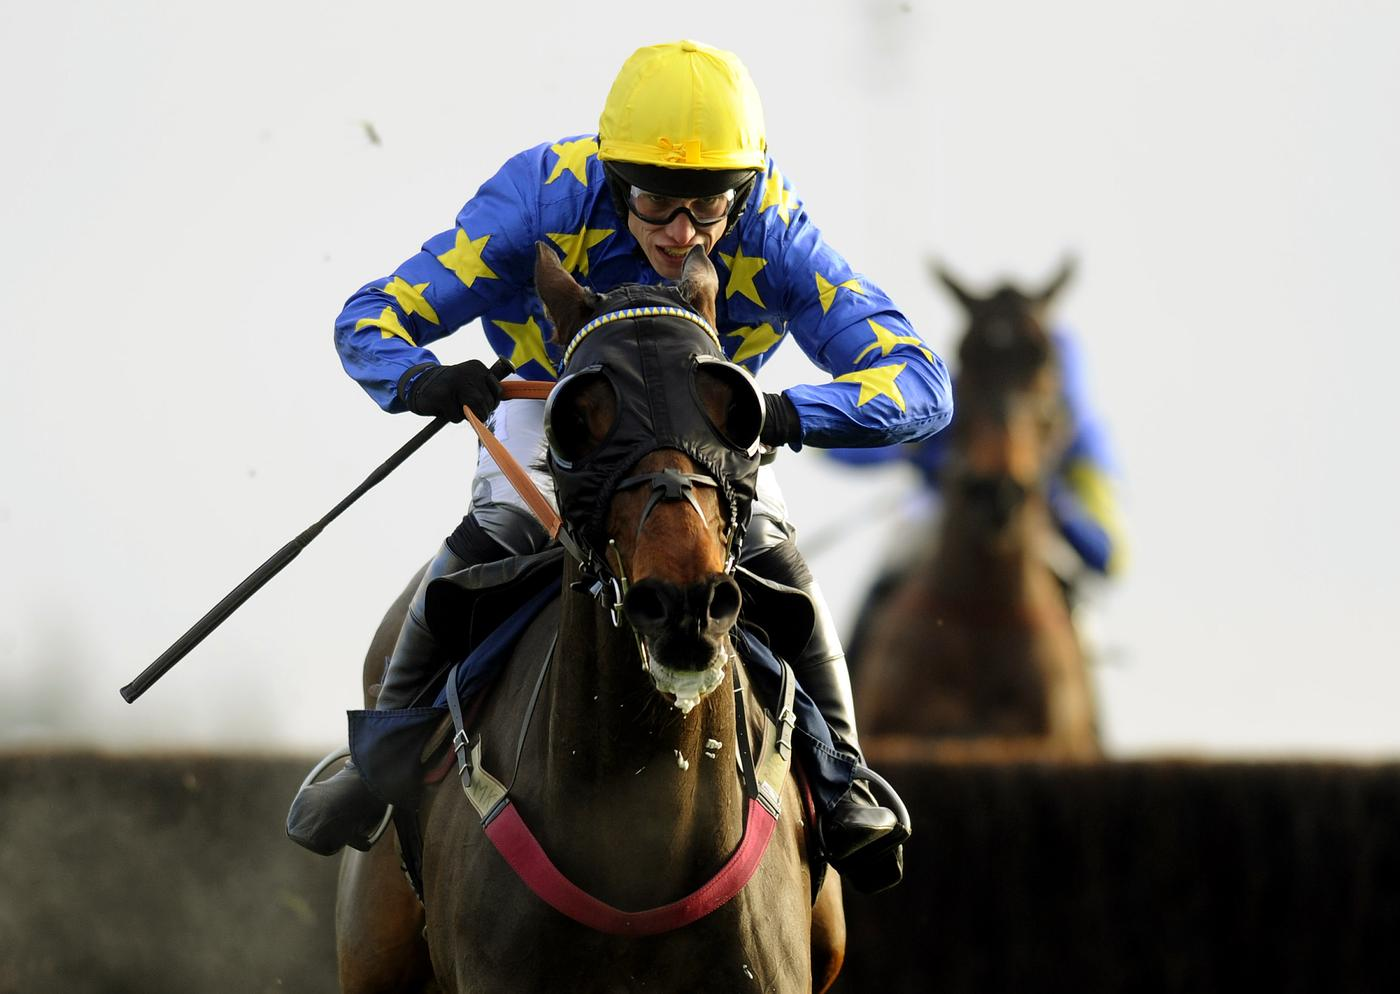 Kauto Star: Legendary racehorse put down after serious fall